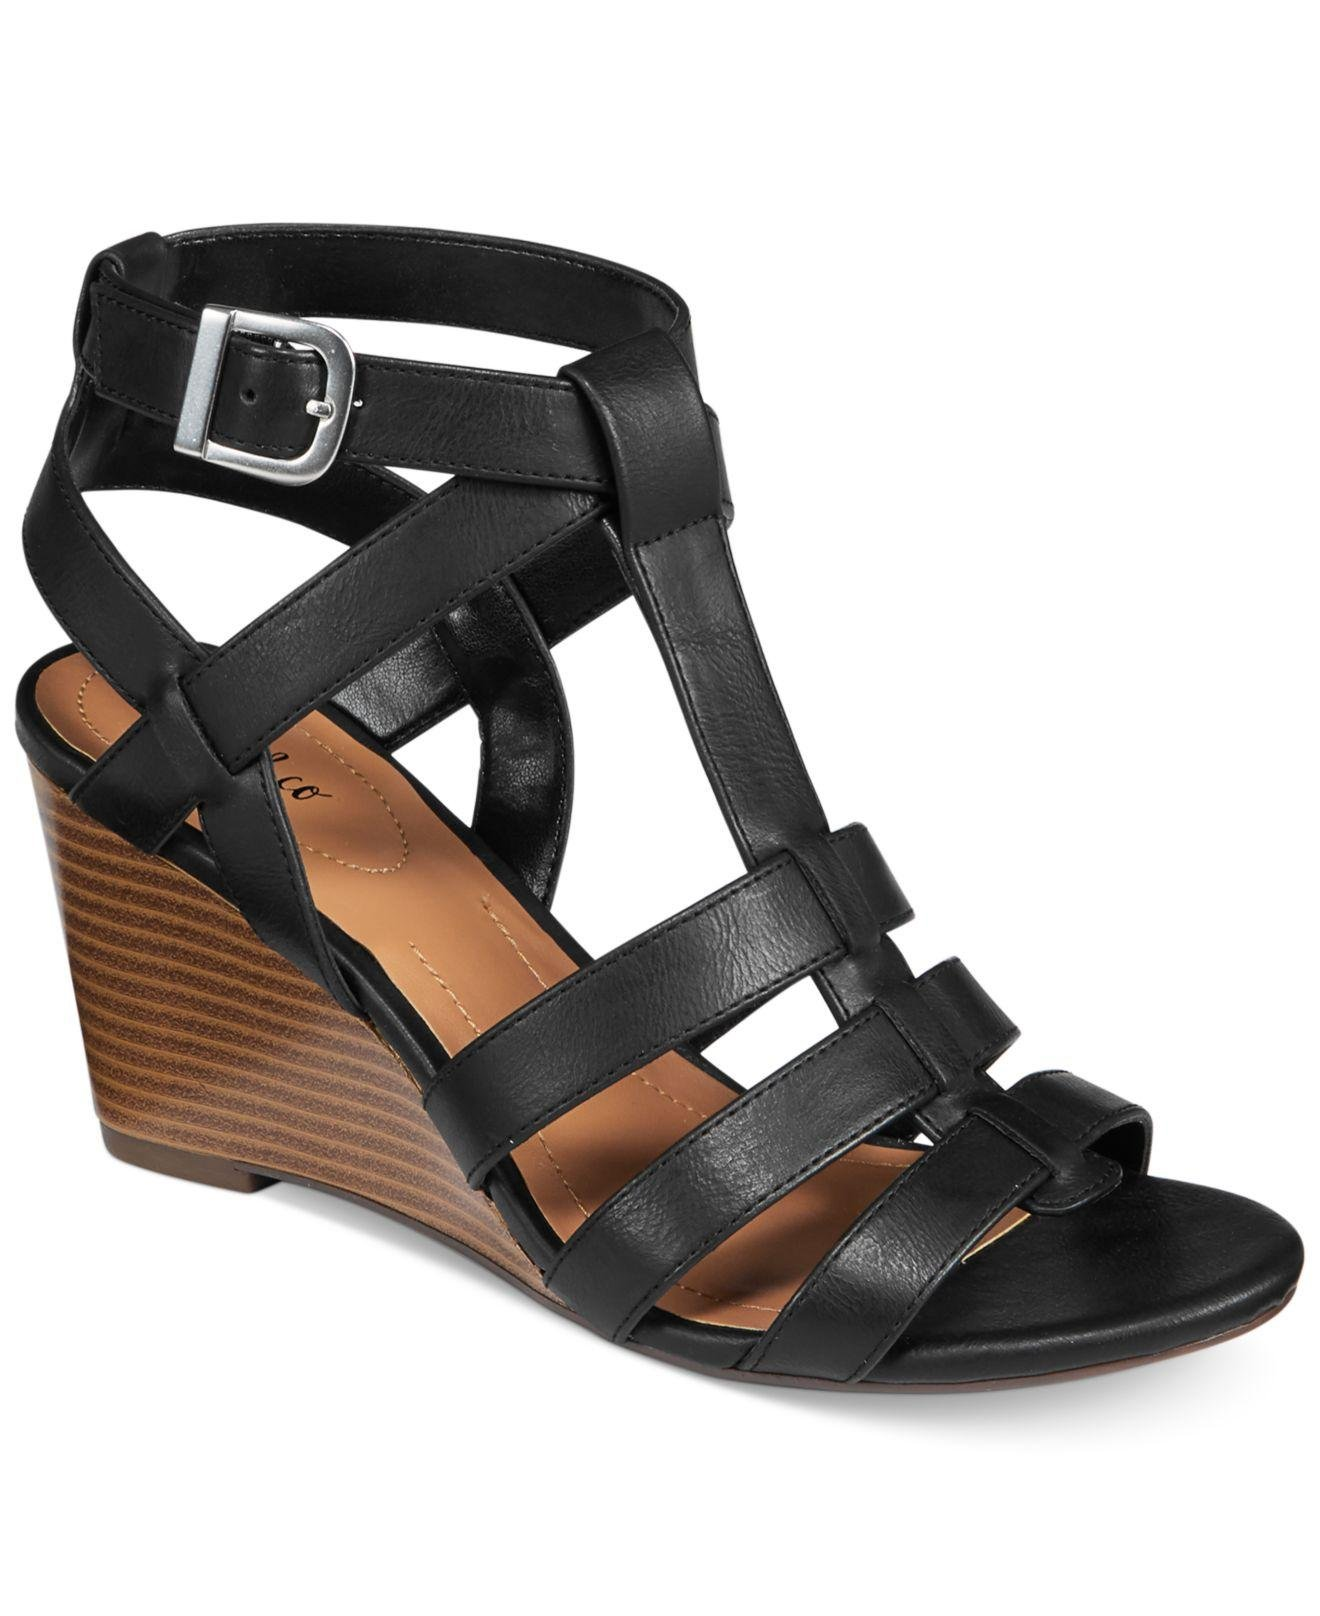 Style & Co. Womens Haydar Open Toe Casual Slingback Wedges Sandals Black Size 8.5